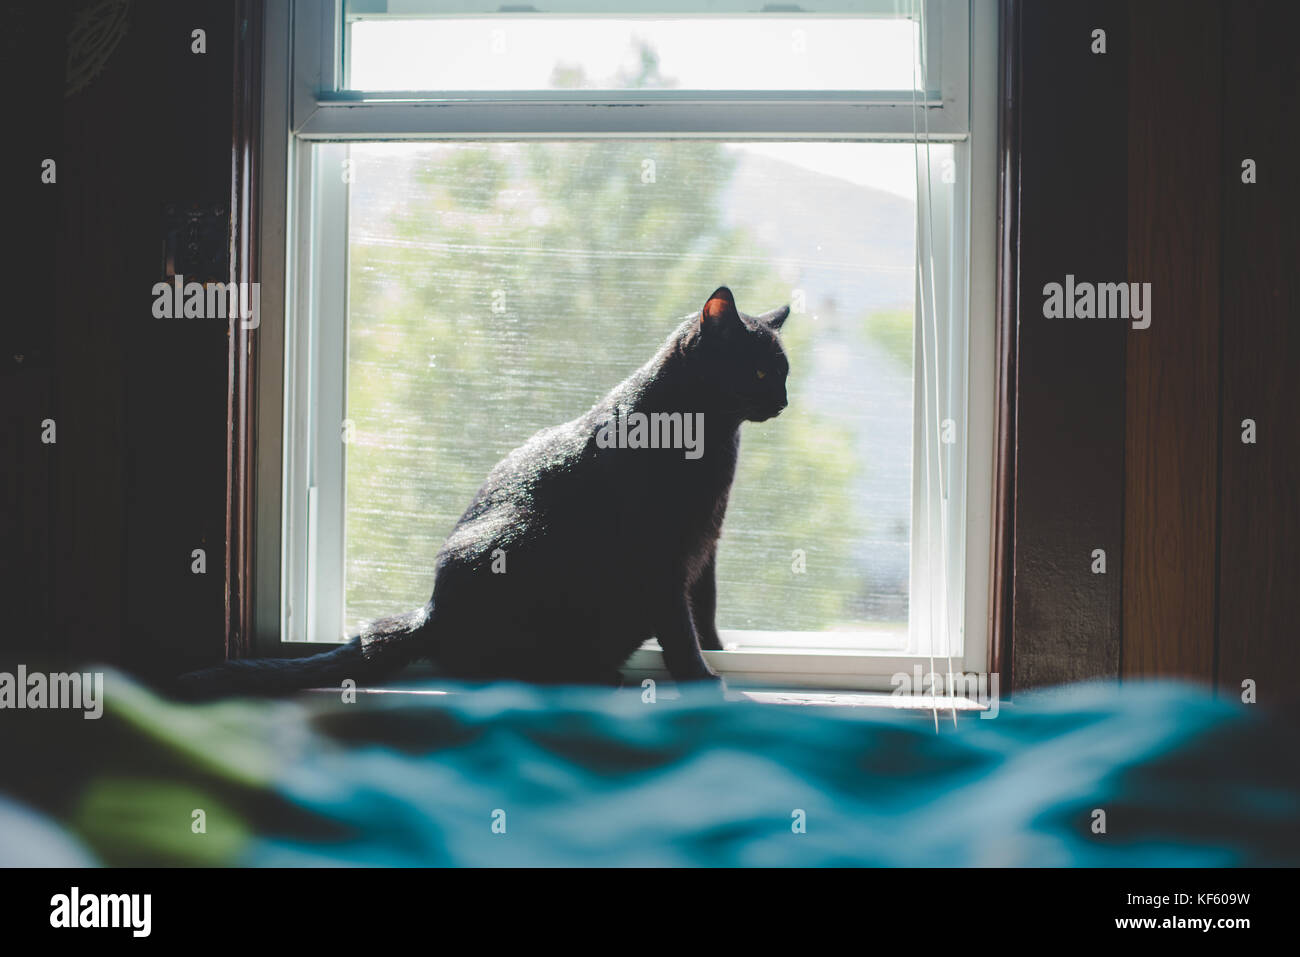 Black cat sitting on a window sill or ledge Stock Photo